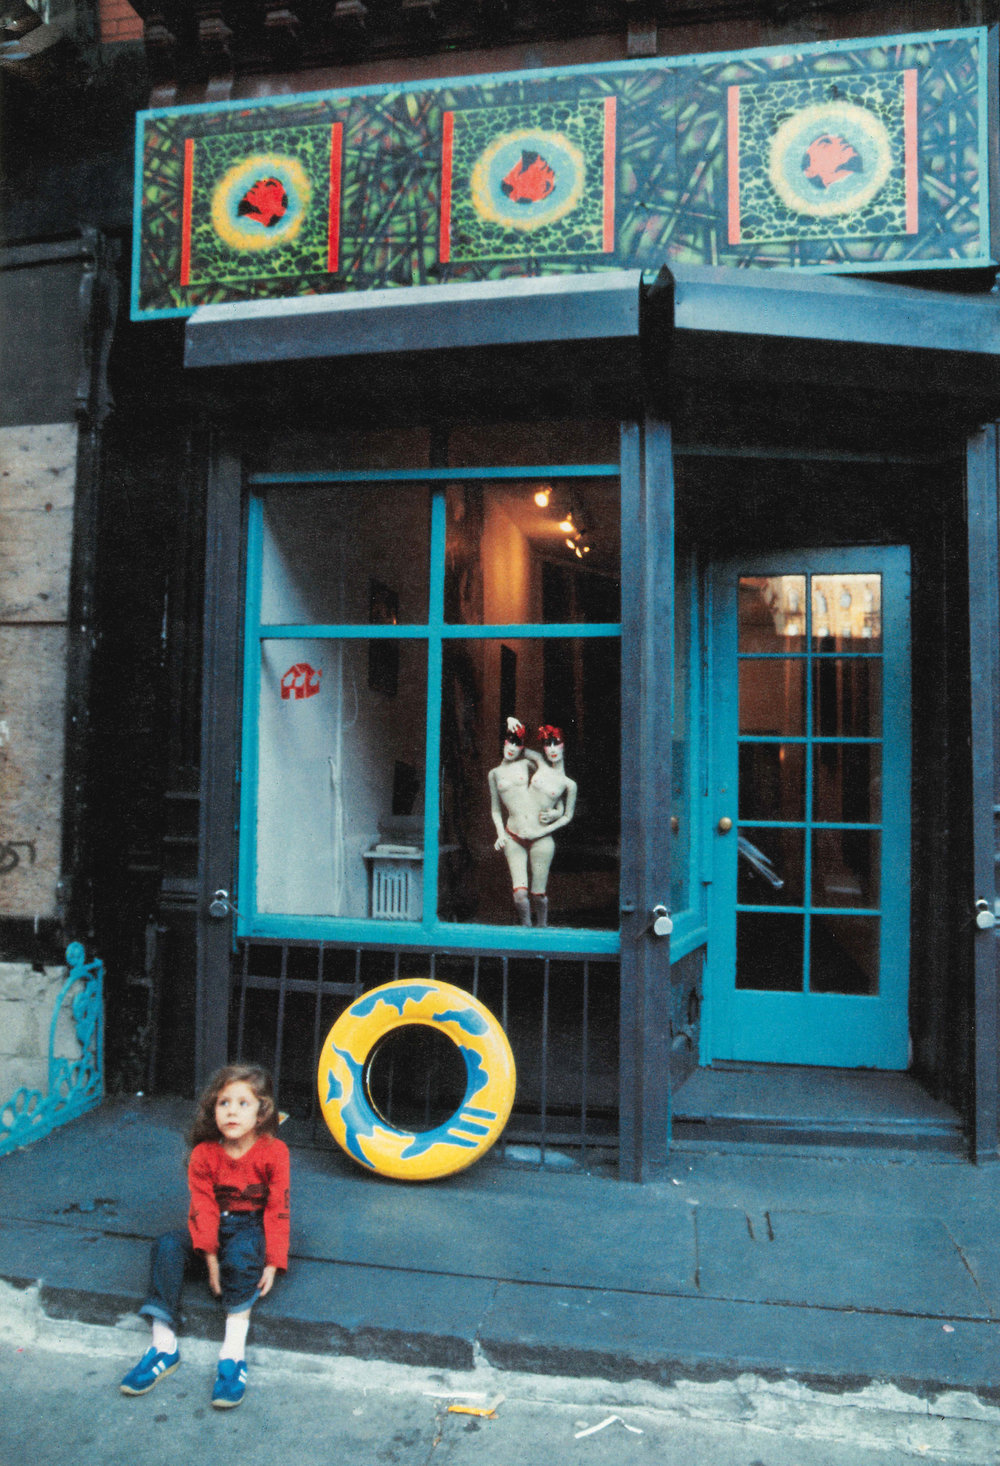 Outside Cilvilian Warfare in 1983. Photograph published in the catalogue to the Neo York exhibition, 1984. The store front sign by David Wojnarowicz.